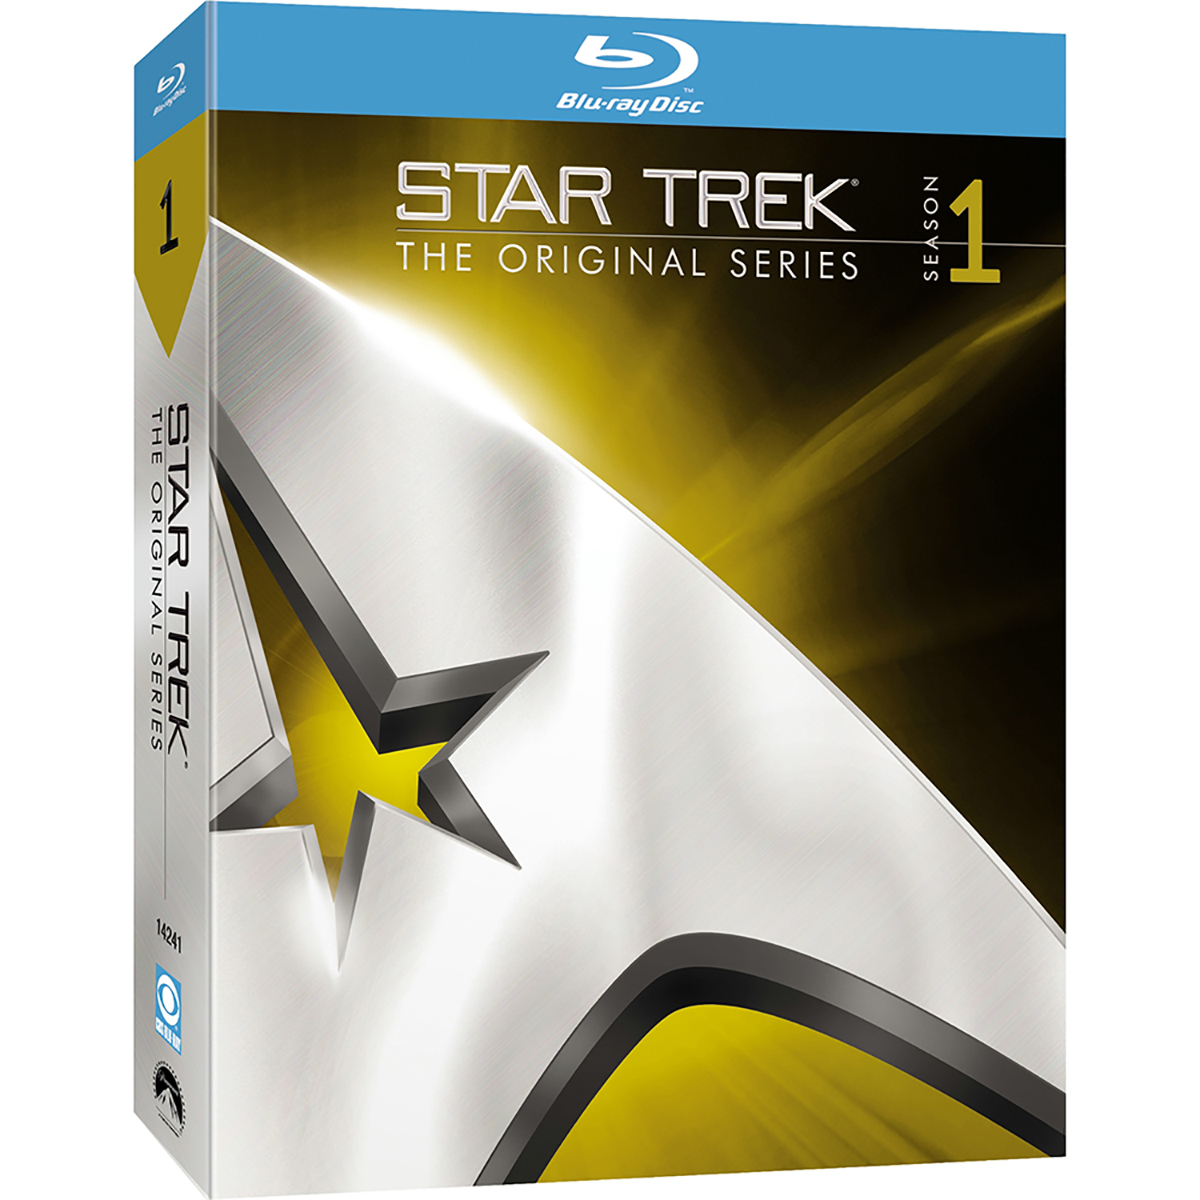 Star Trek: The Original Series - Season 1 Blu-ray